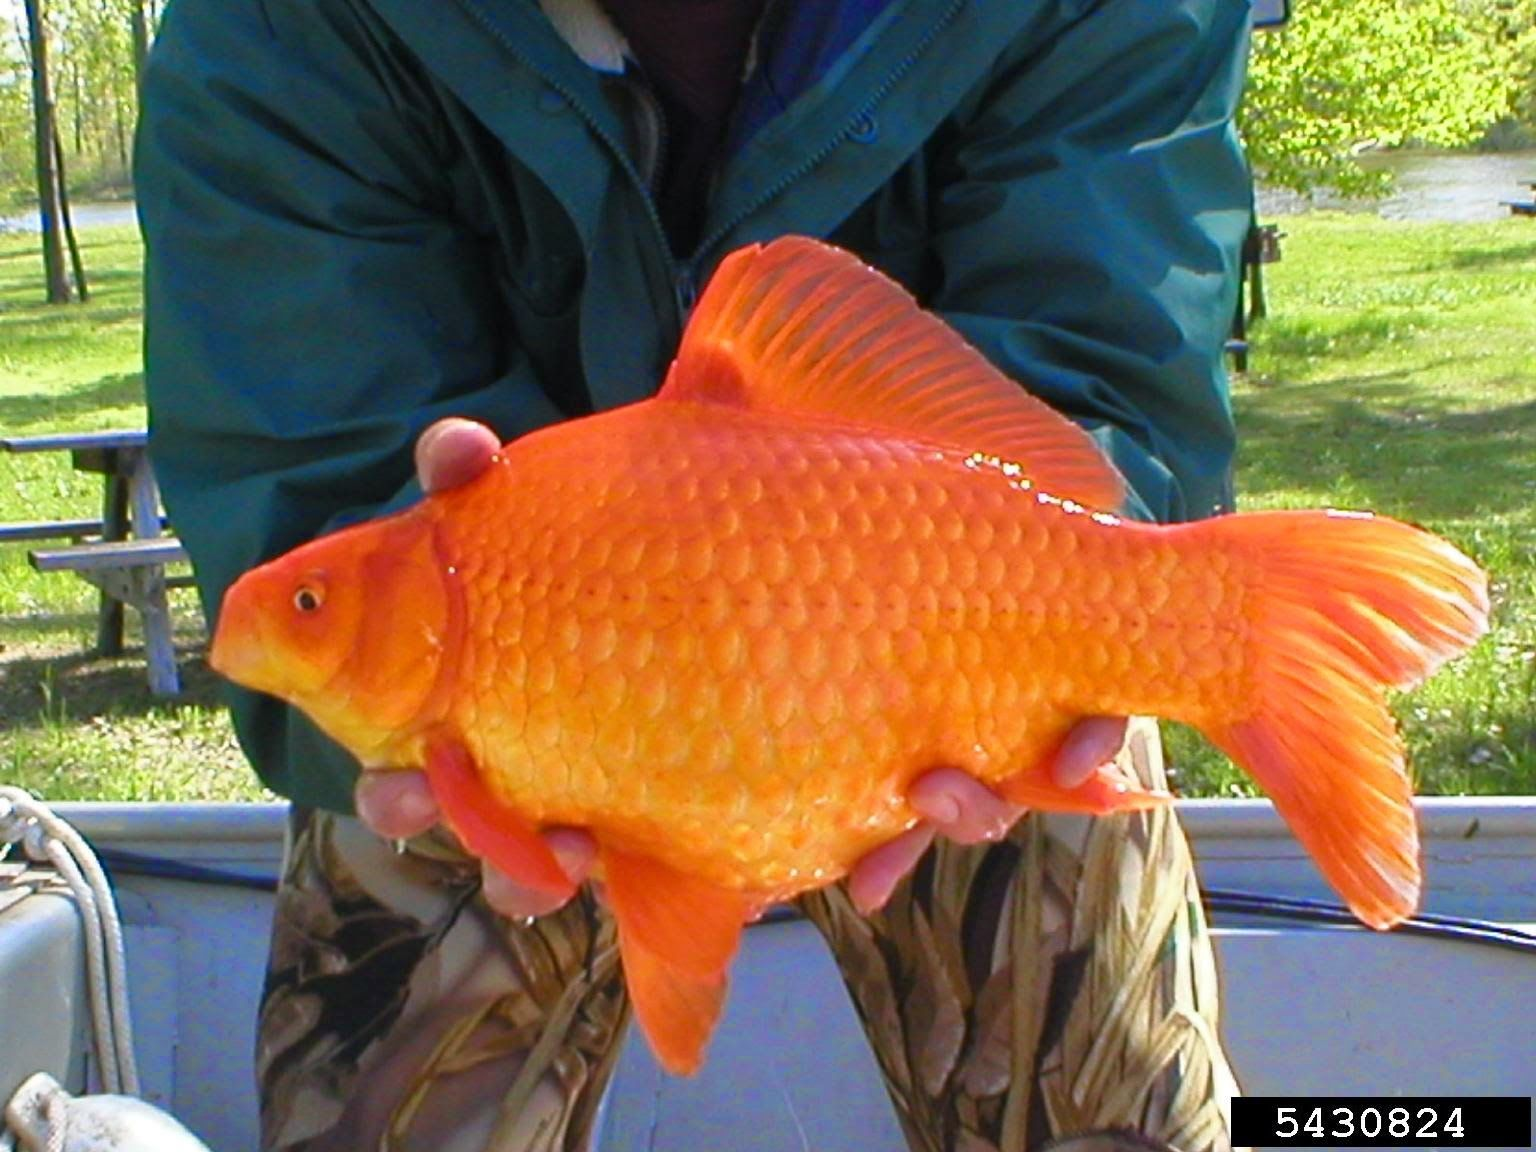 Thousands of goldfish found in colorado pond bugwood for Goldfish pond